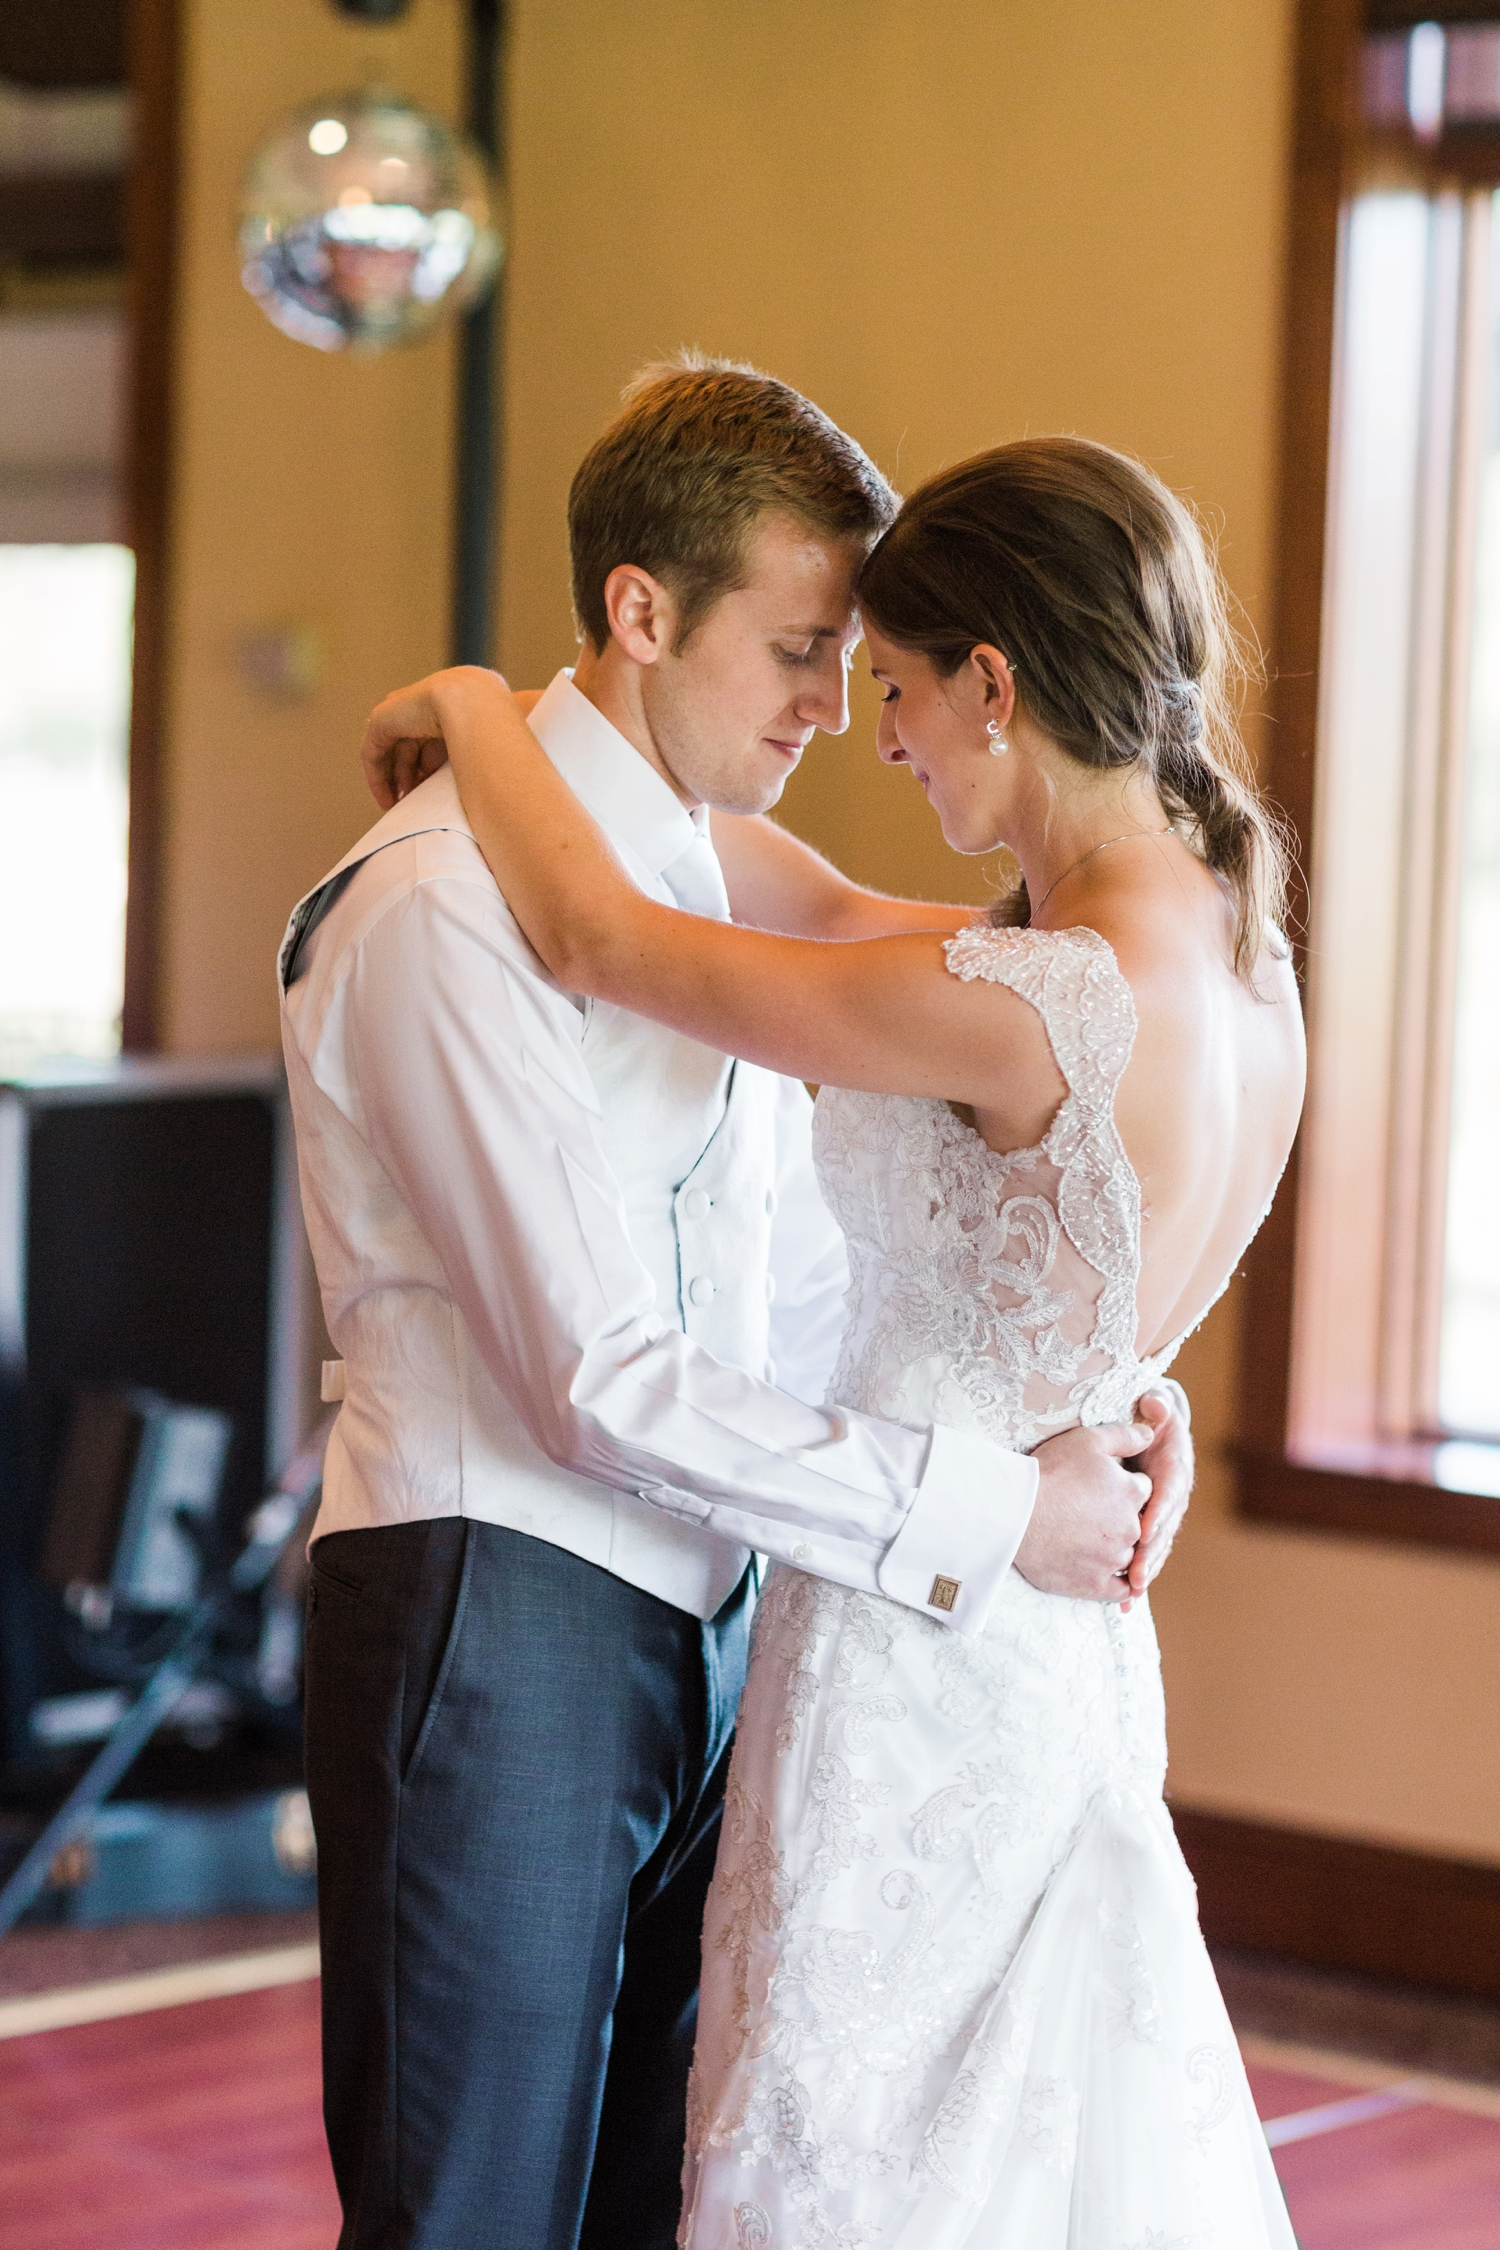 NCR_Country_Club_Kettering_Ohio_Wedding_Photography_Chloe_Luka_Photography_7201.jpg